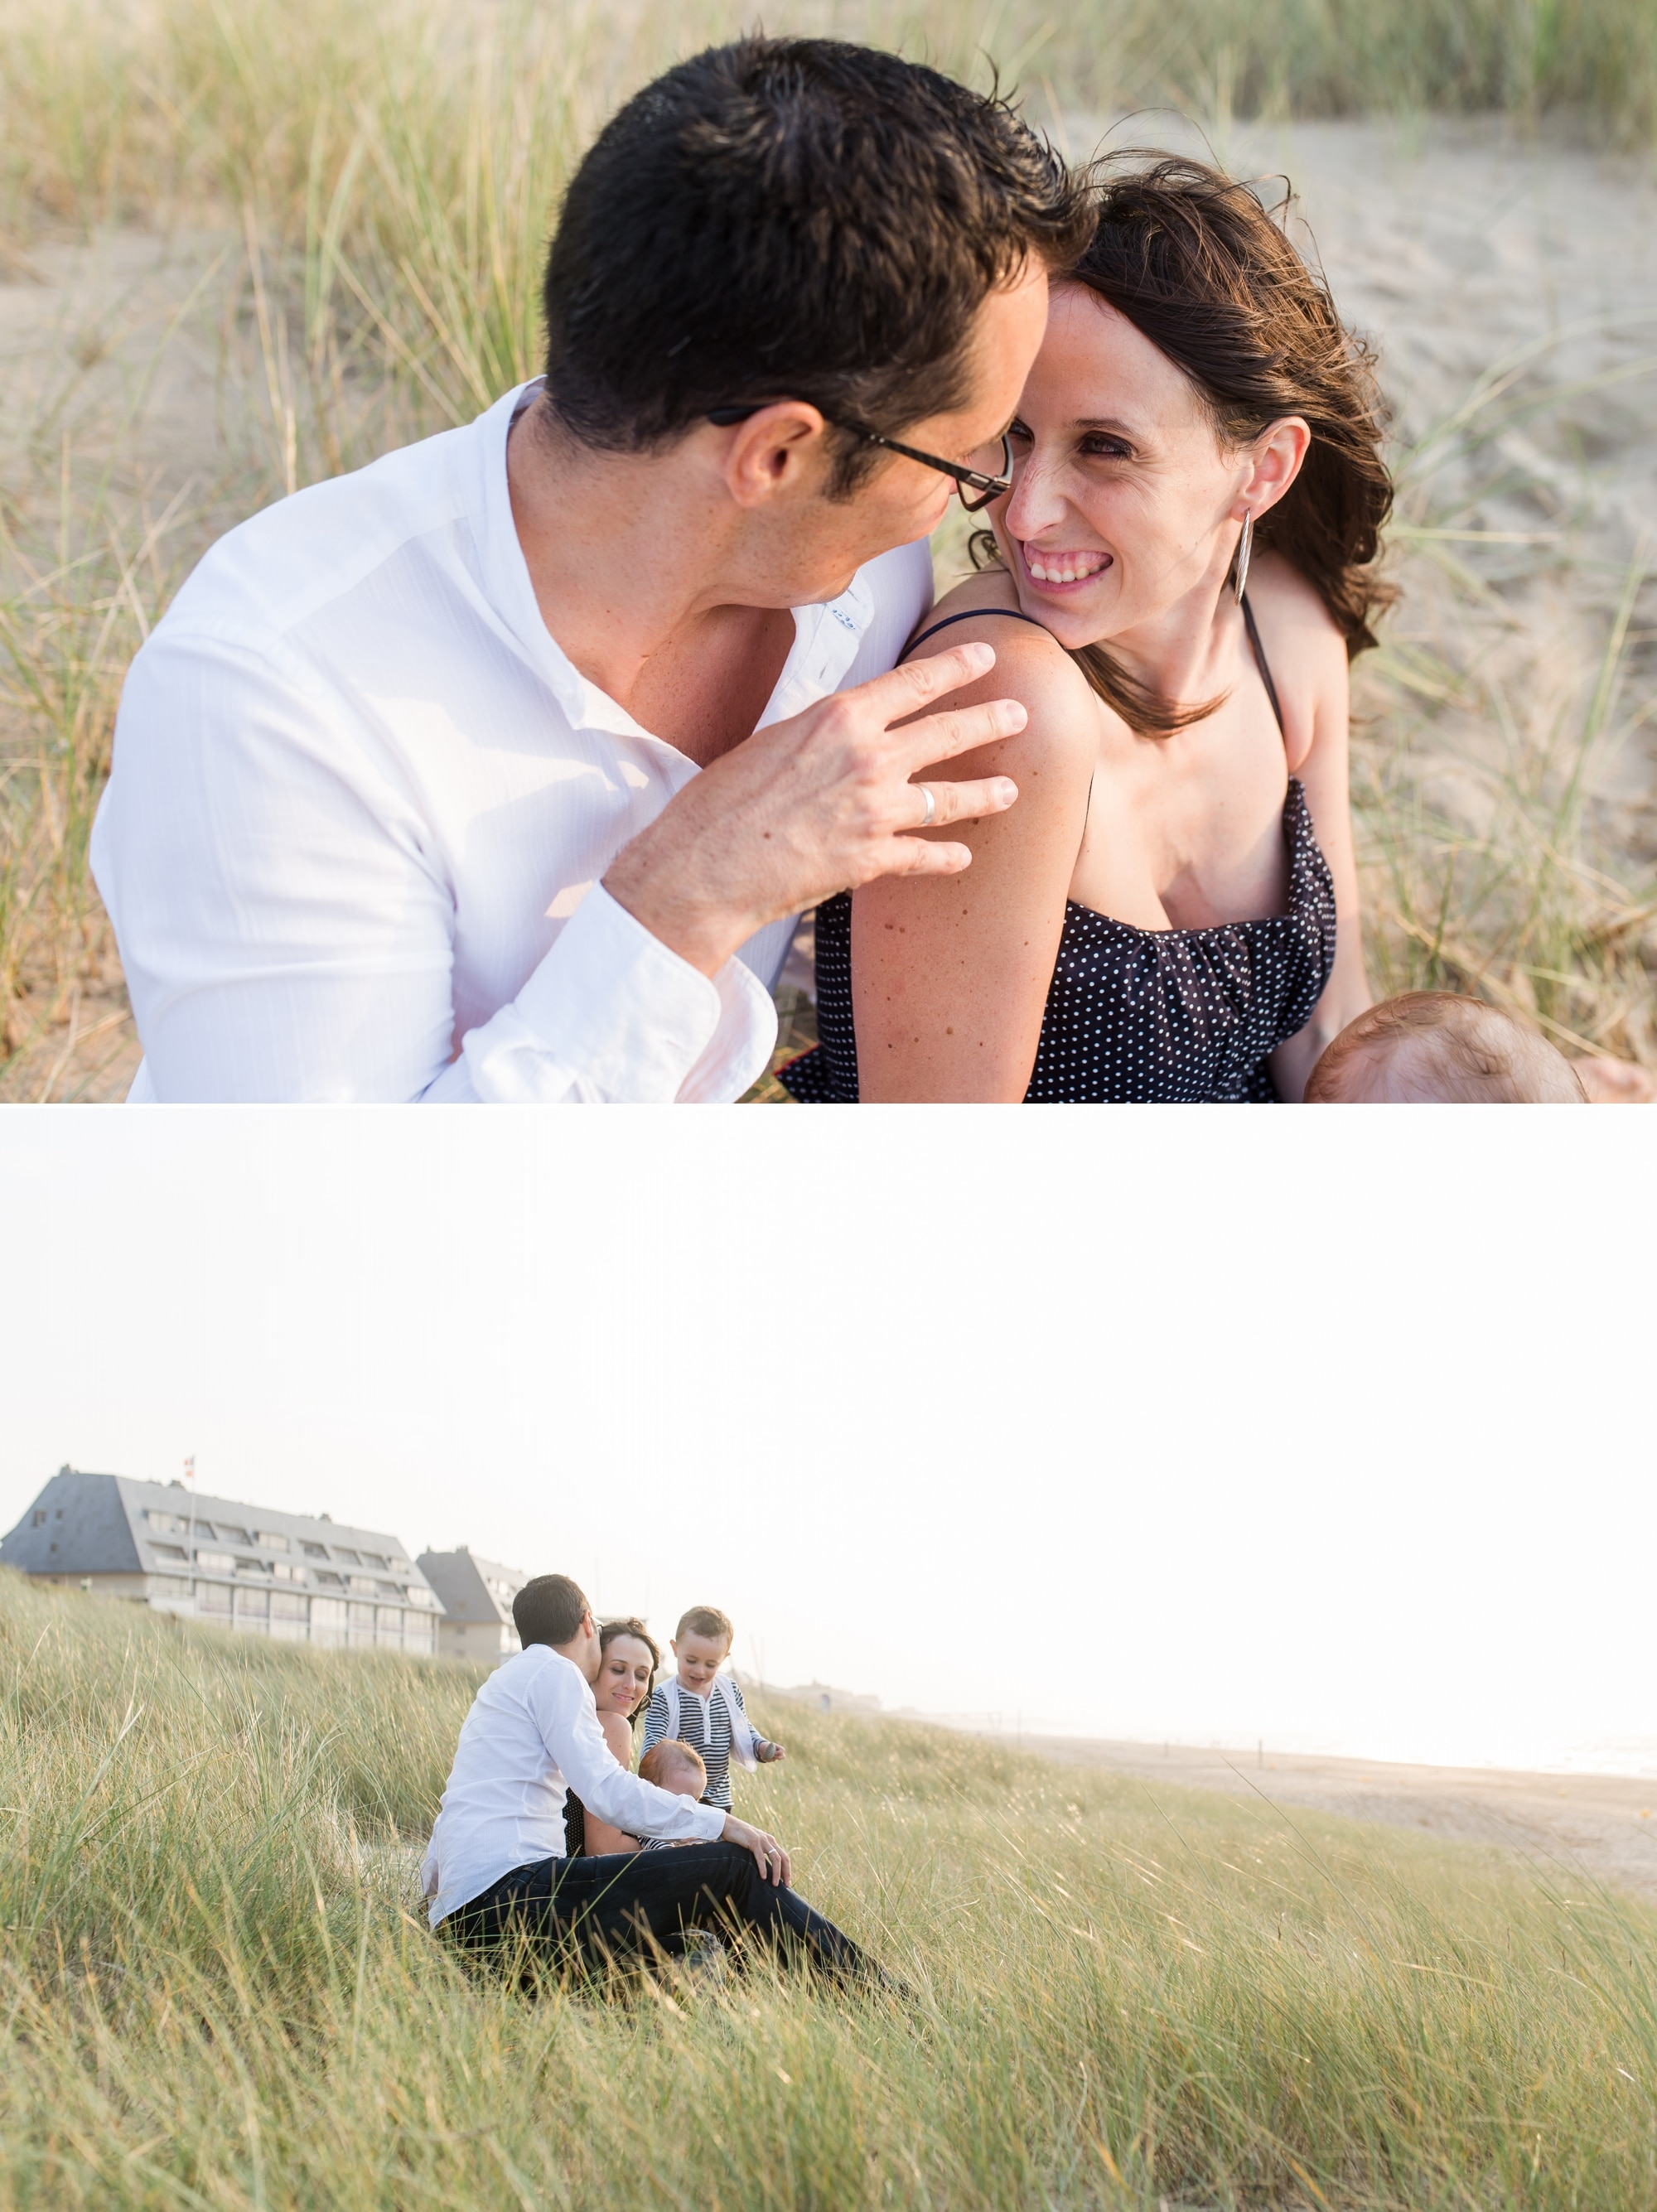 séance famille cabourg basse normandie photographe shooting lifestyle-33